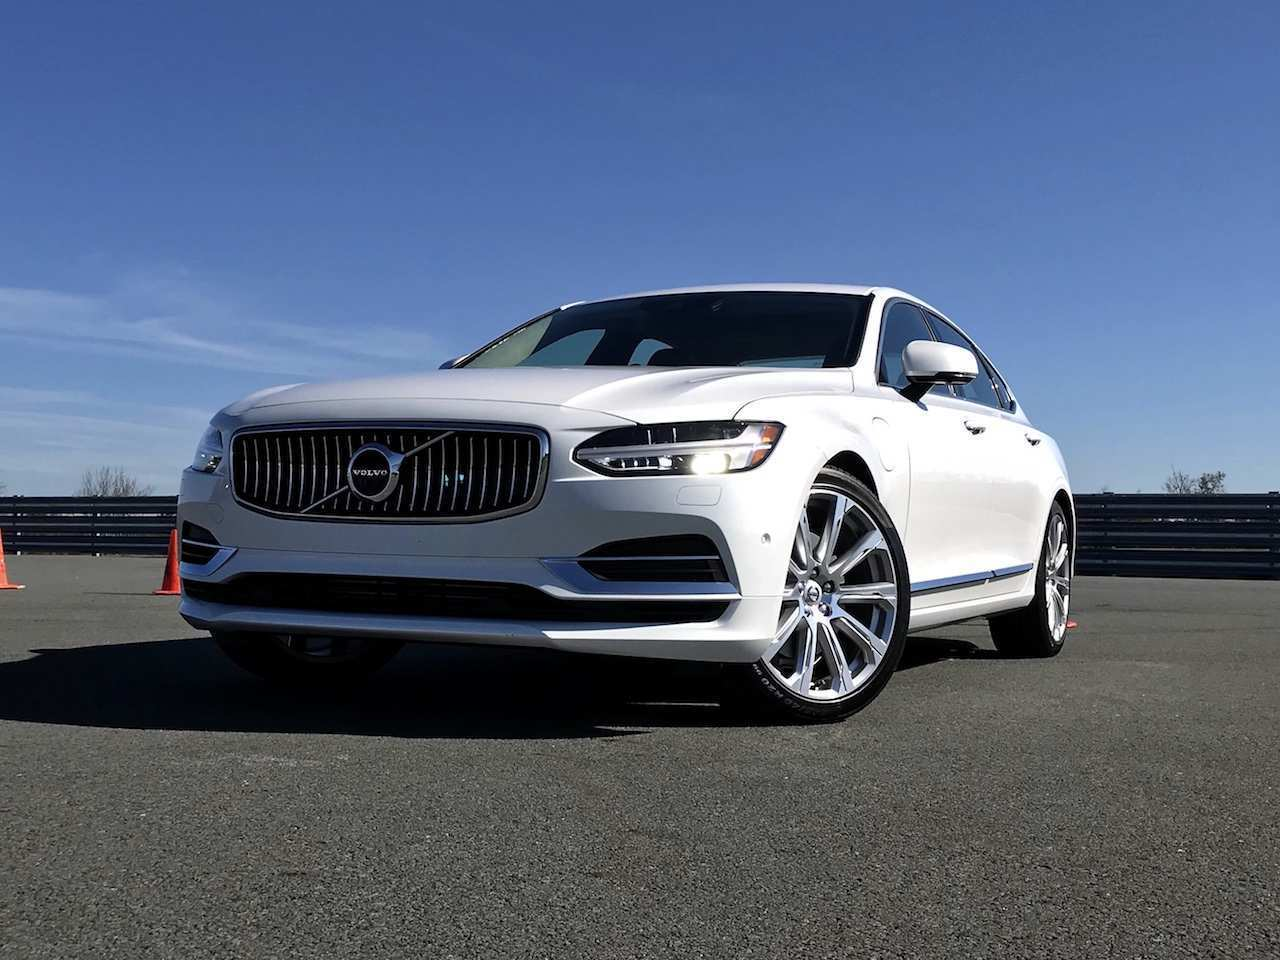 18 Gallery of The S90 Volvo 2019 Review Speed Test by The S90 Volvo 2019 Review